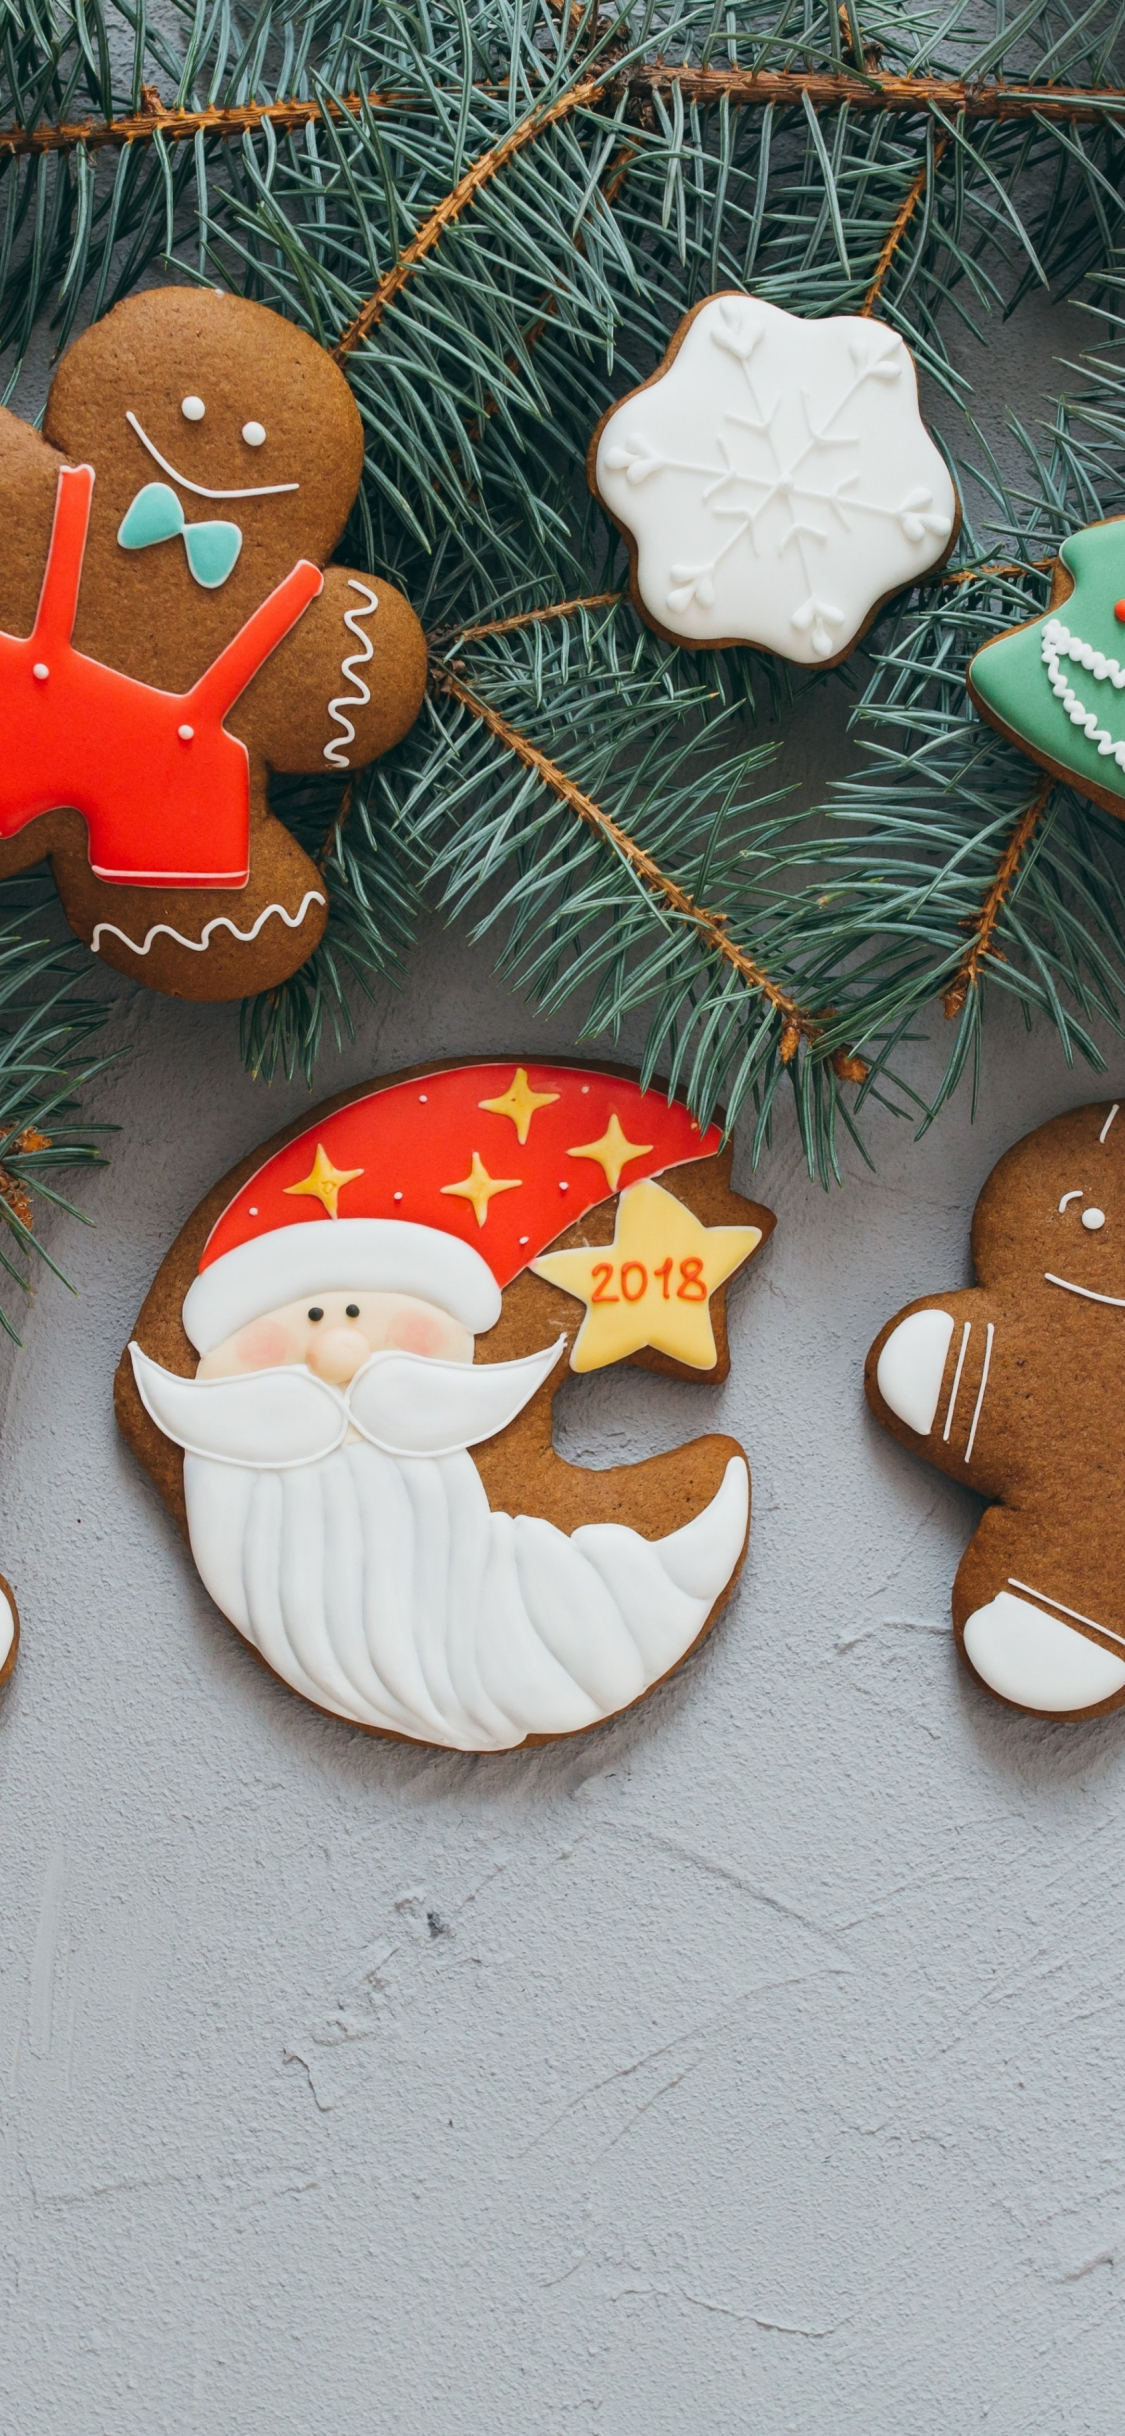 Download 1125x2436 Wallpaper Christmas Cookies Holiday